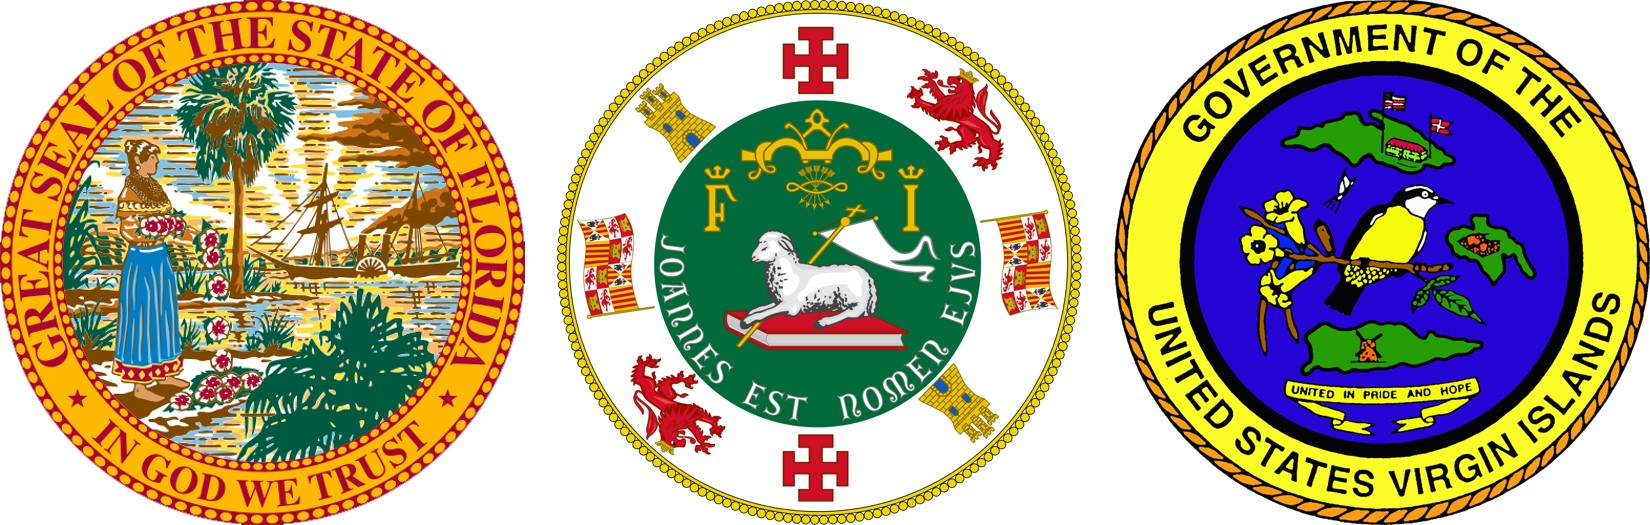 State Seals of Florida, Puerto Rico, and the Virgin Islands